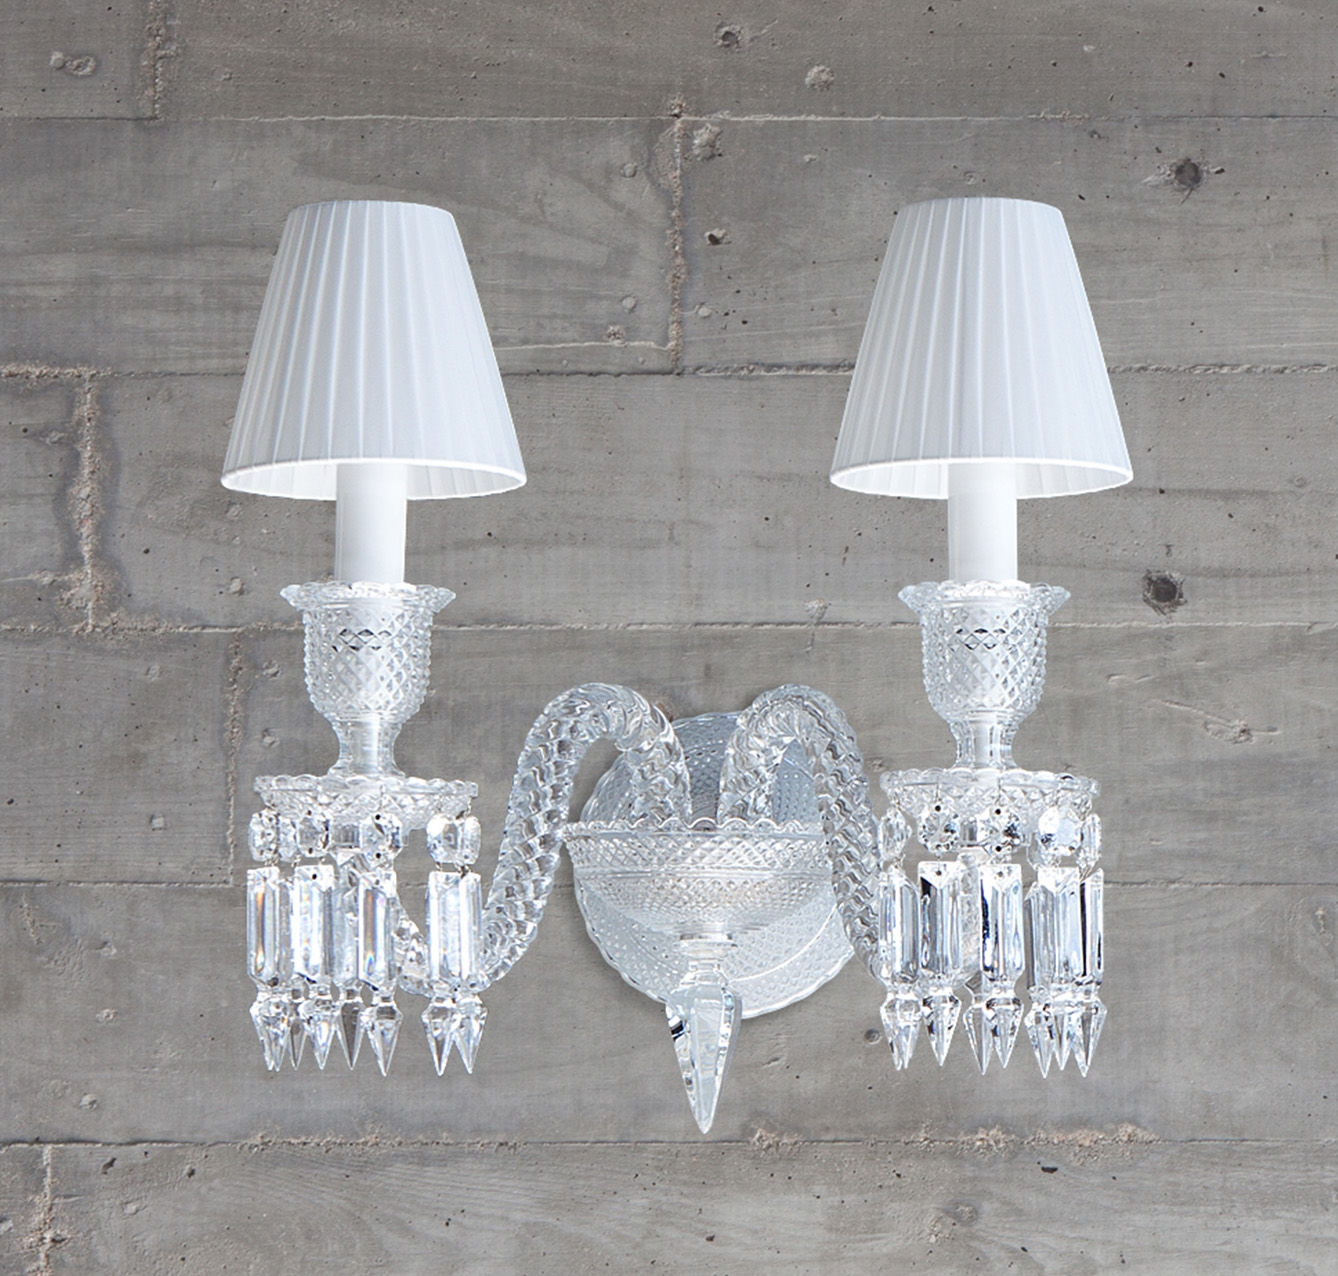 Wall sconce clear 2l - Baccarat & wall sconce clear Baccarat zenith 2807742